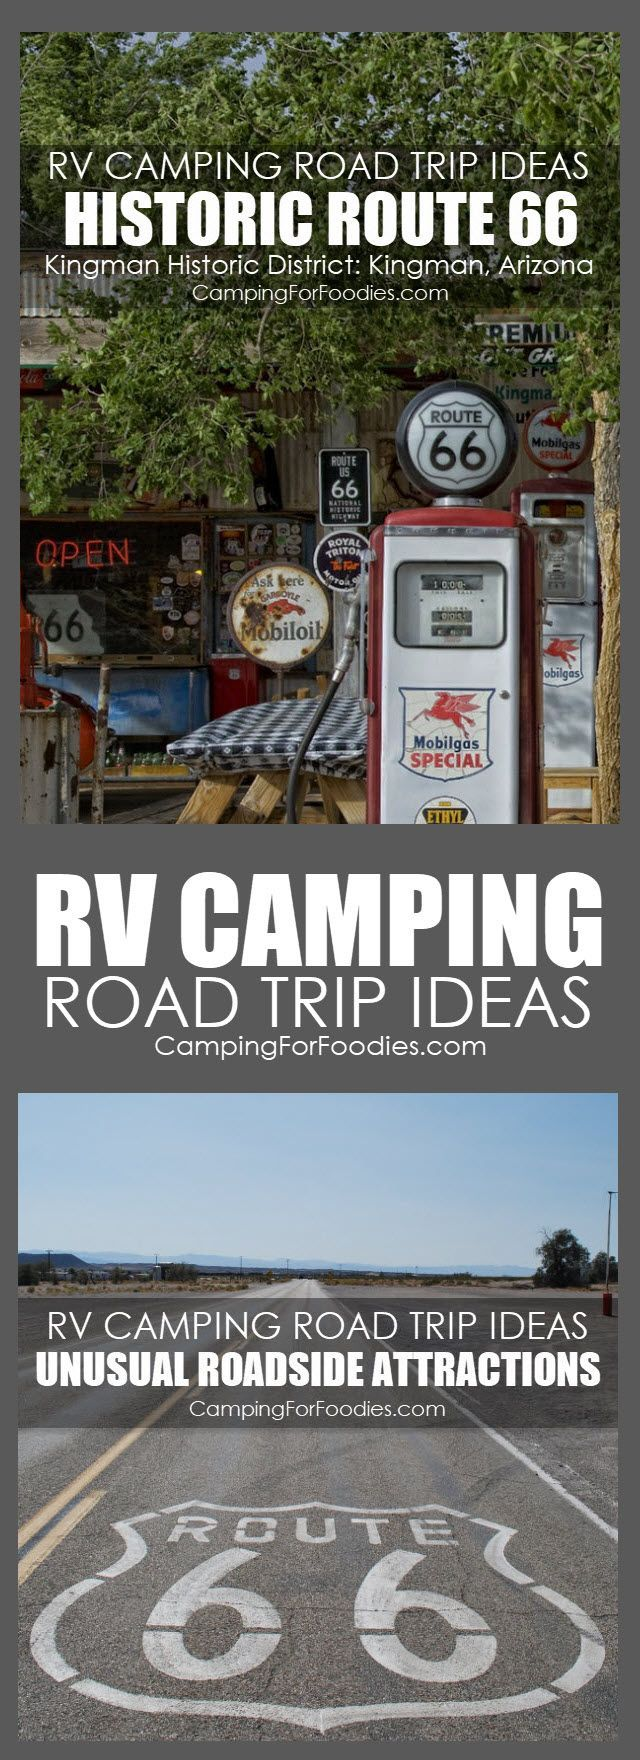 RV Camping Road Trip Ideas With Unusual Roadside Attractions! Some camp trips are short weekend getaways, others are full-fledged vacations. For our family, camping trips are about the journey as much as the destination. When planning your next trip, allocate some time to stop along your route. Here are a few ideas to experience a bit of Americana! #camping #road #trip #unusual #roadside #attractions #rv #road #trip #ideas #historic #vintage #route #66 #Kingman #Arizona